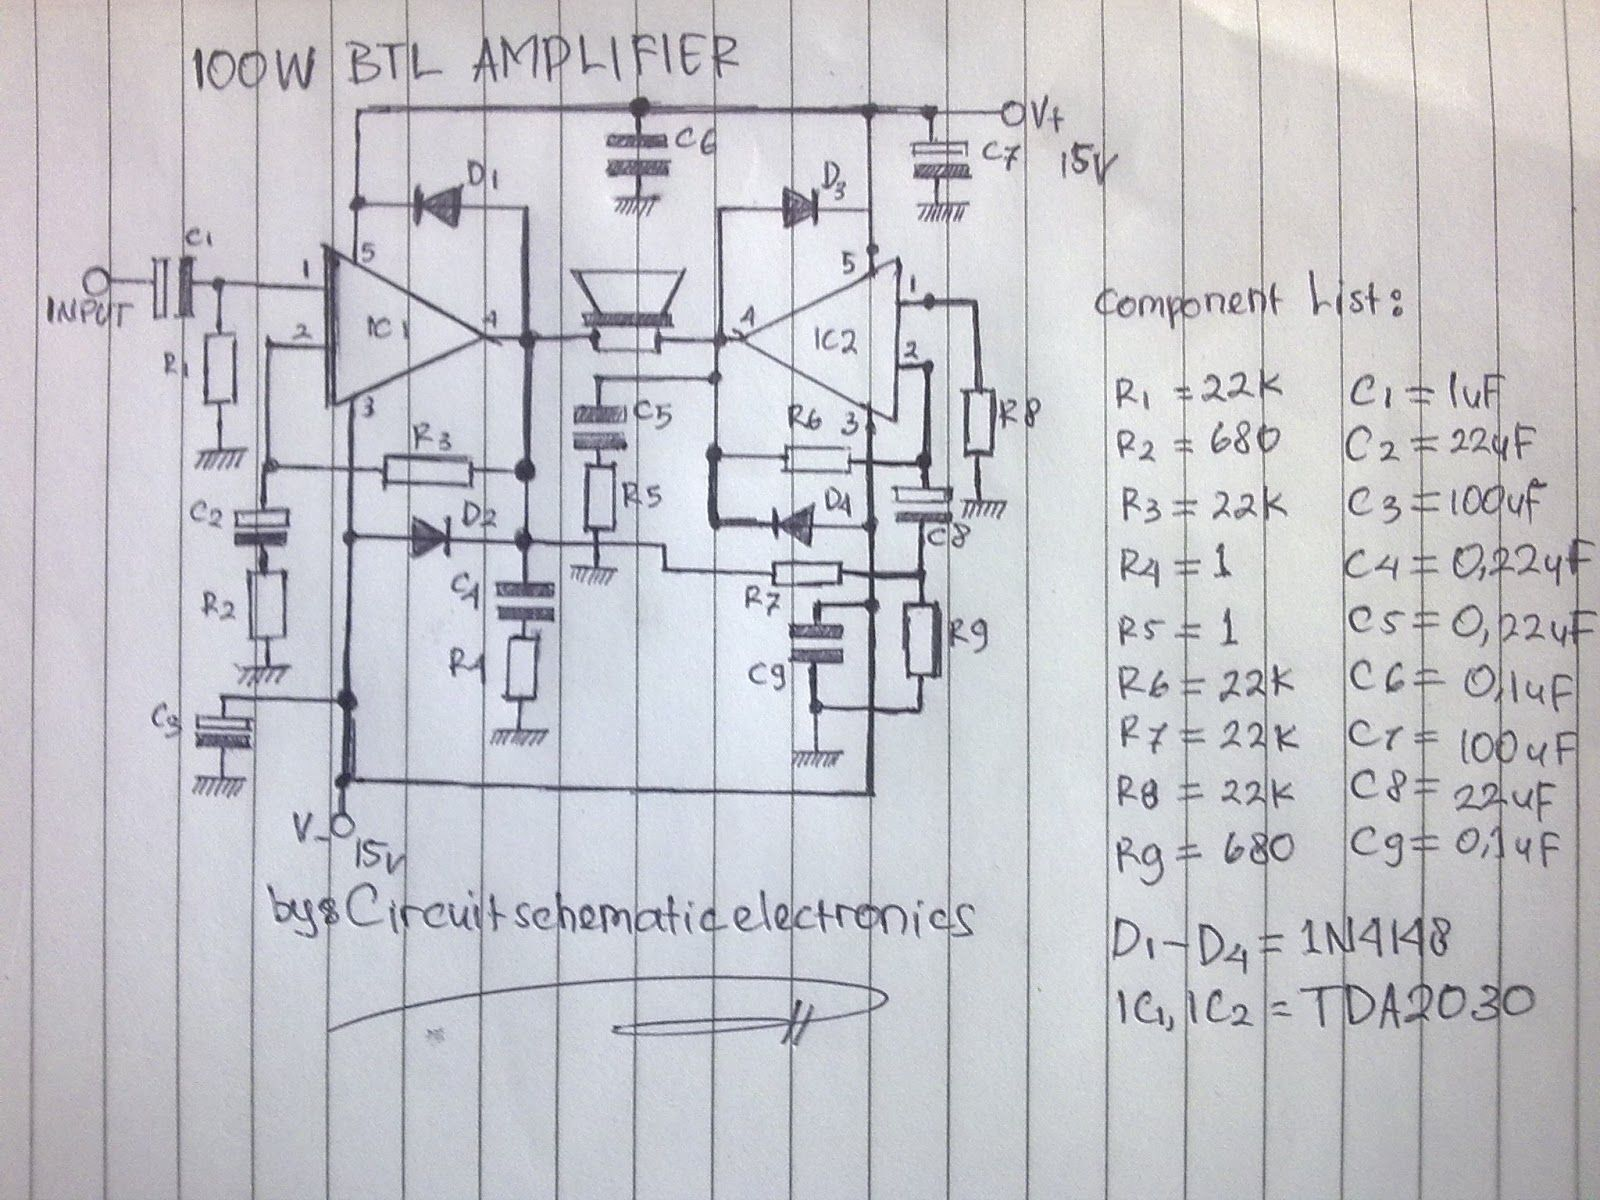 medium resolution of 100w btl tda2030 amplifier circuit